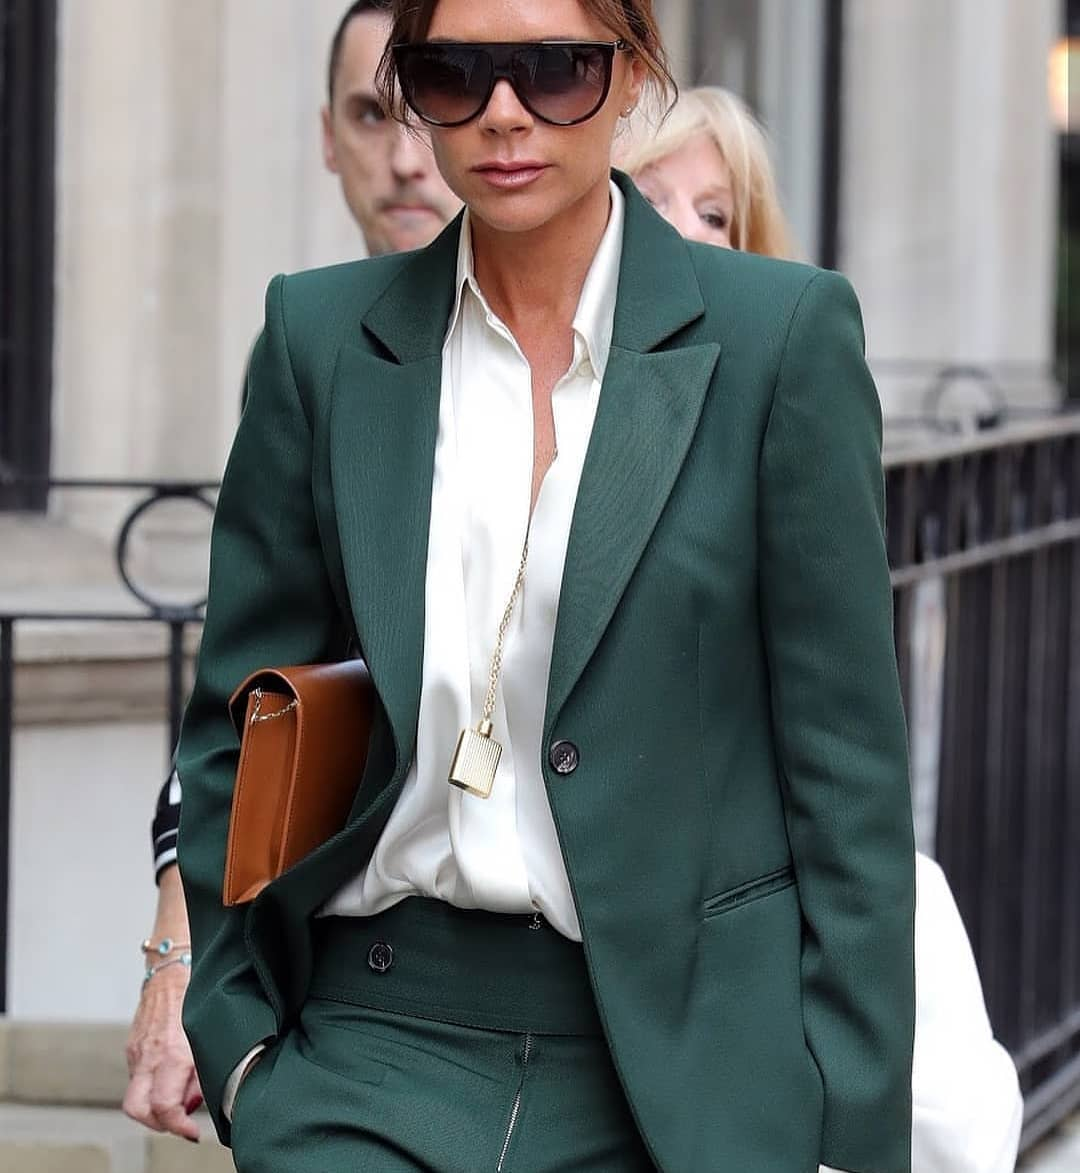 Green Pantsuit For Summer Dressy Events 2020